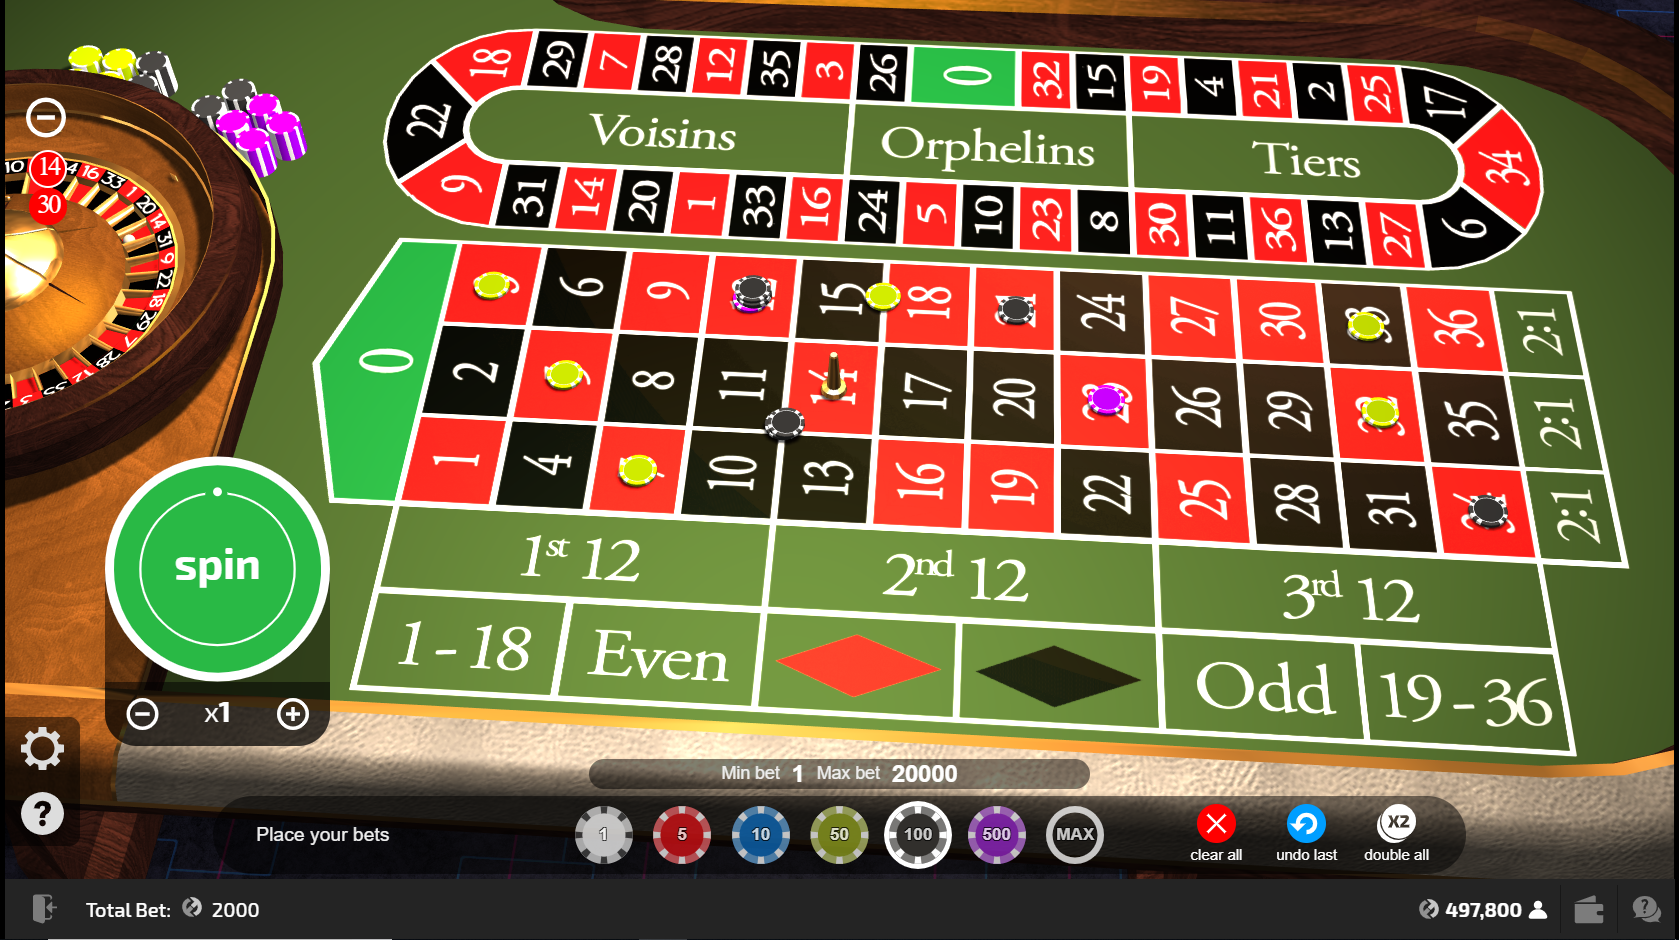 Calculate craps odds payouts